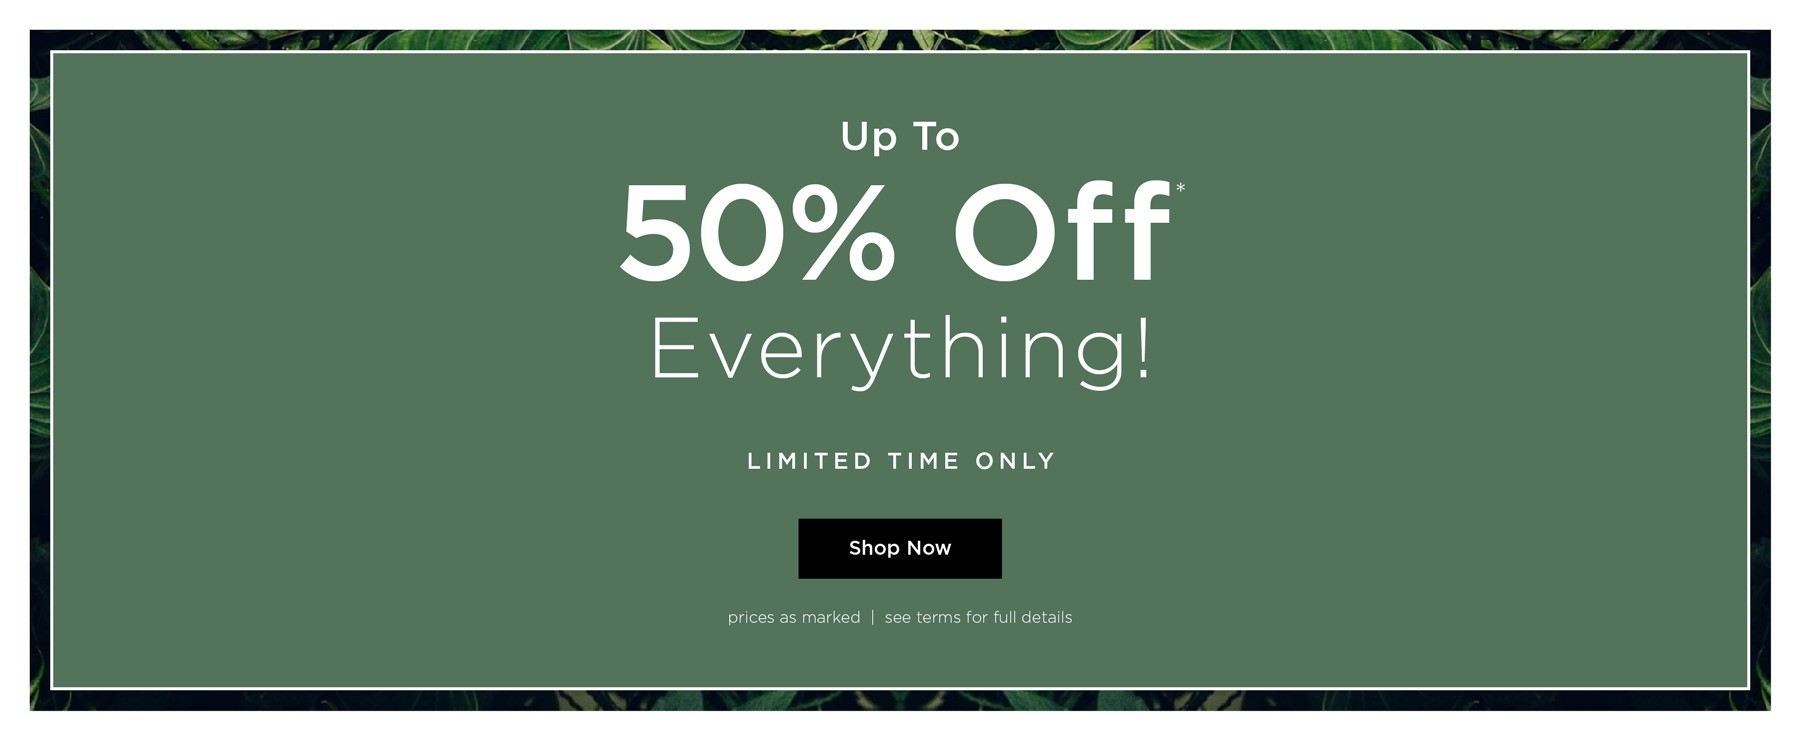 Up to 50% off* Sitewide - Prices As Marked